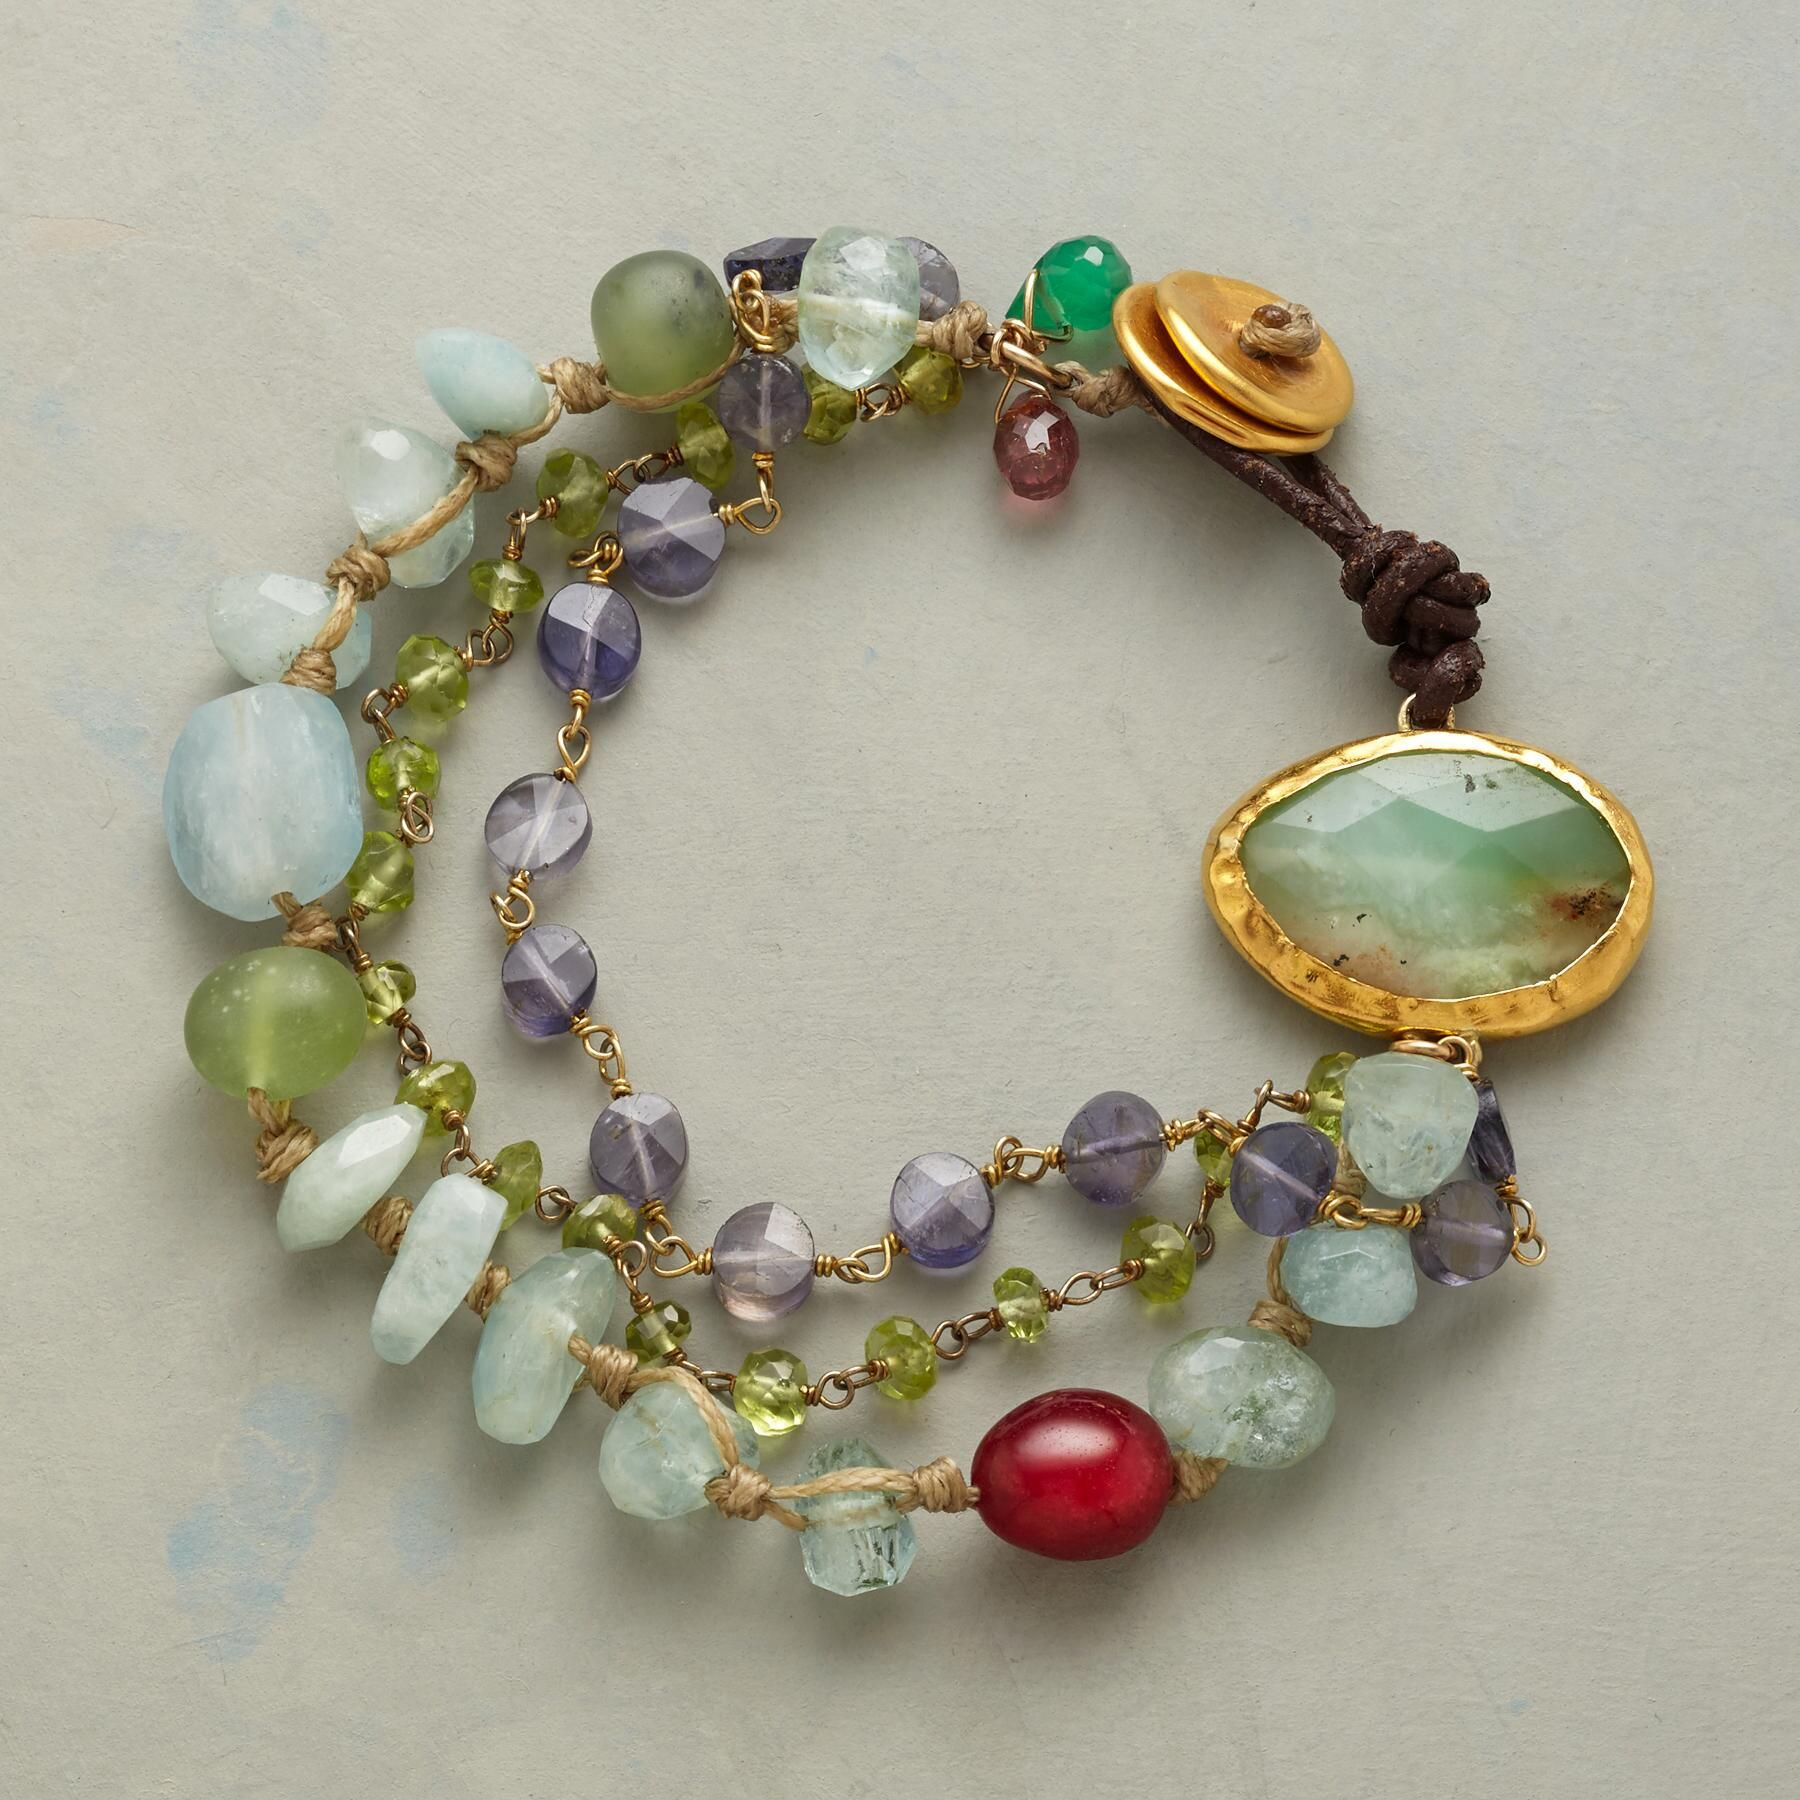 CALYPSO BRACELET Nava Zahavi lures the eye to chrysoprase